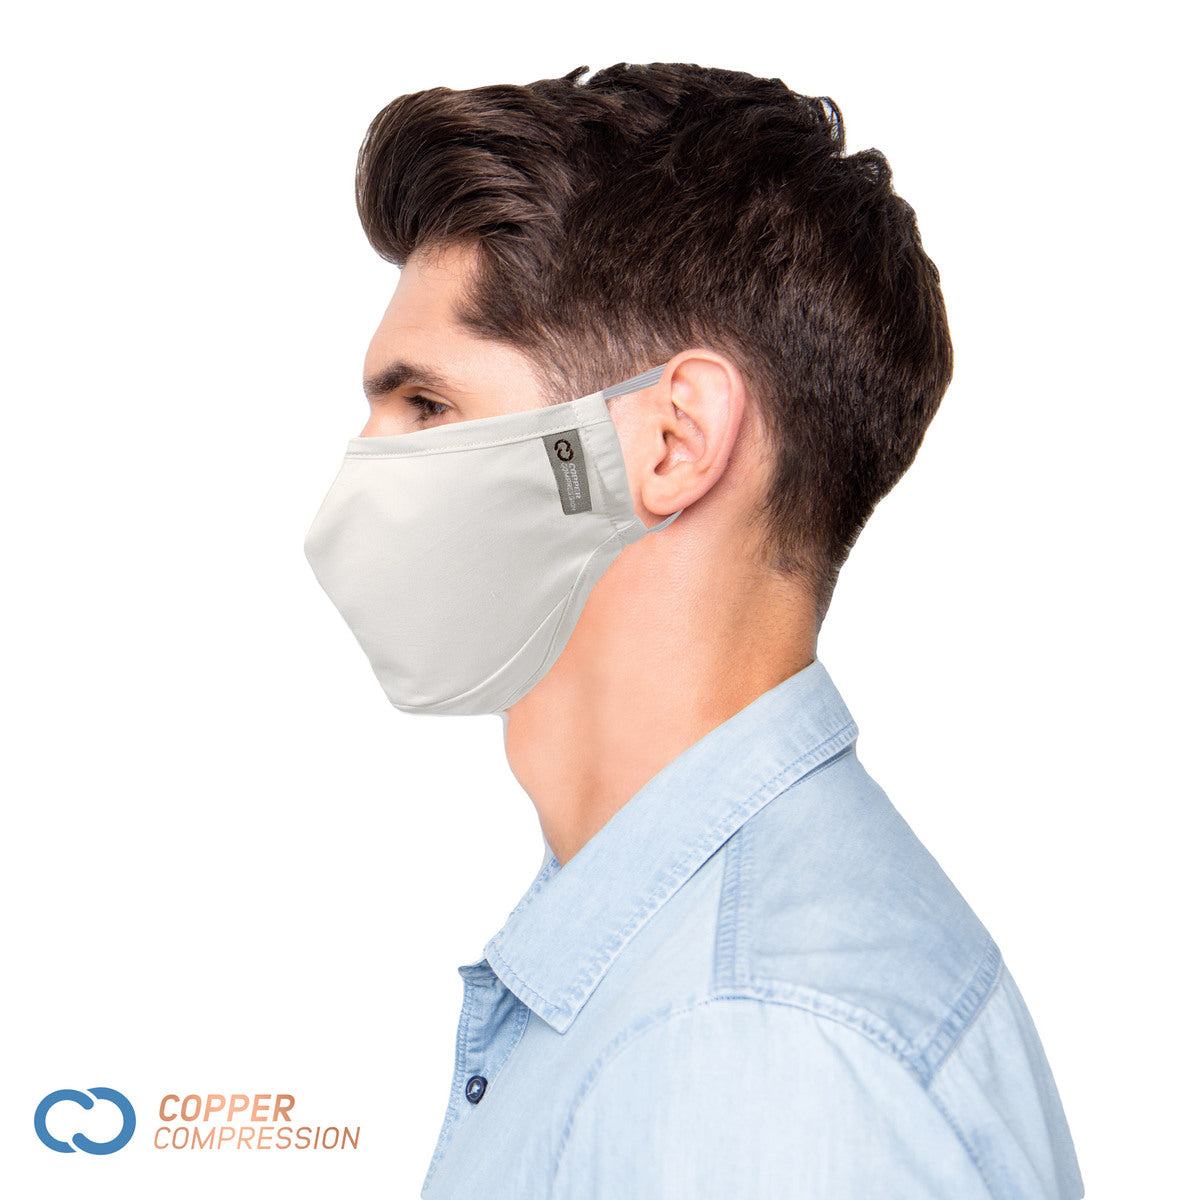 Copper Compression's Revolutionary Face Masks Helping Fight the Battle Against COVID 19